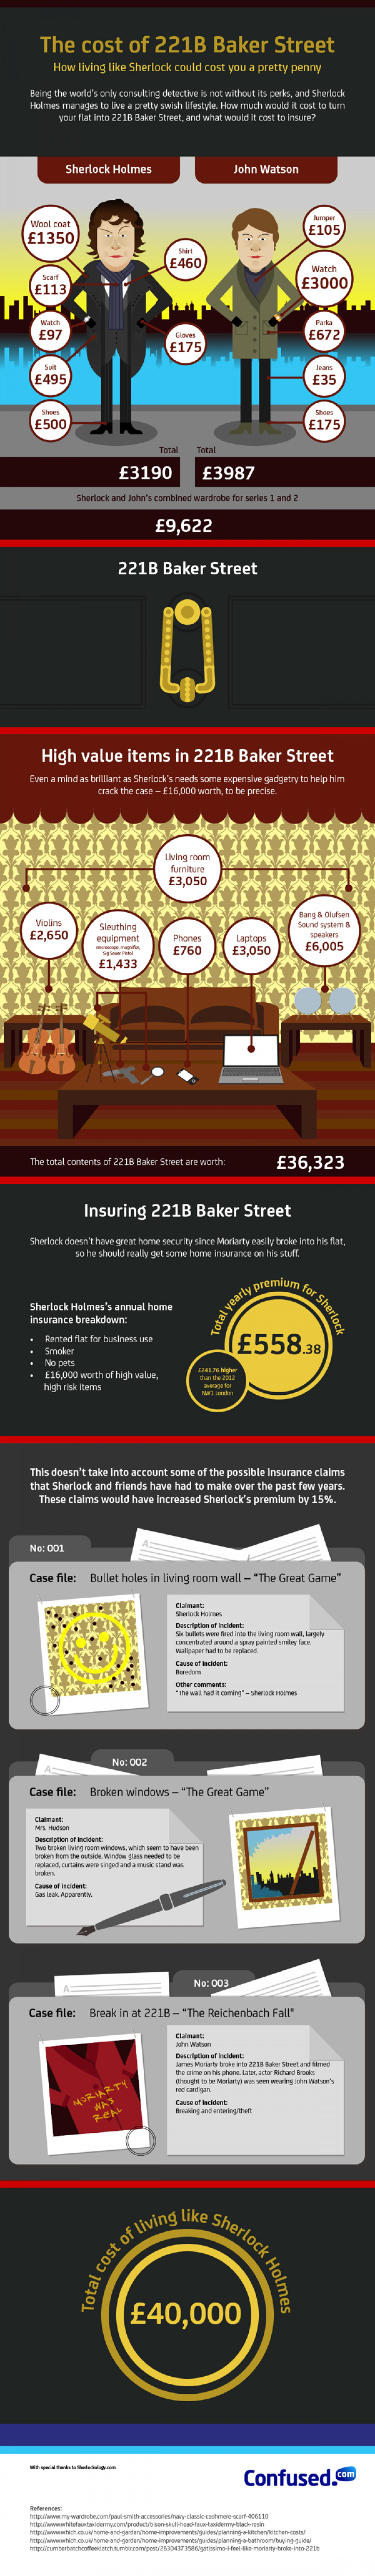 The Cost of 221B Baker Street Infographic